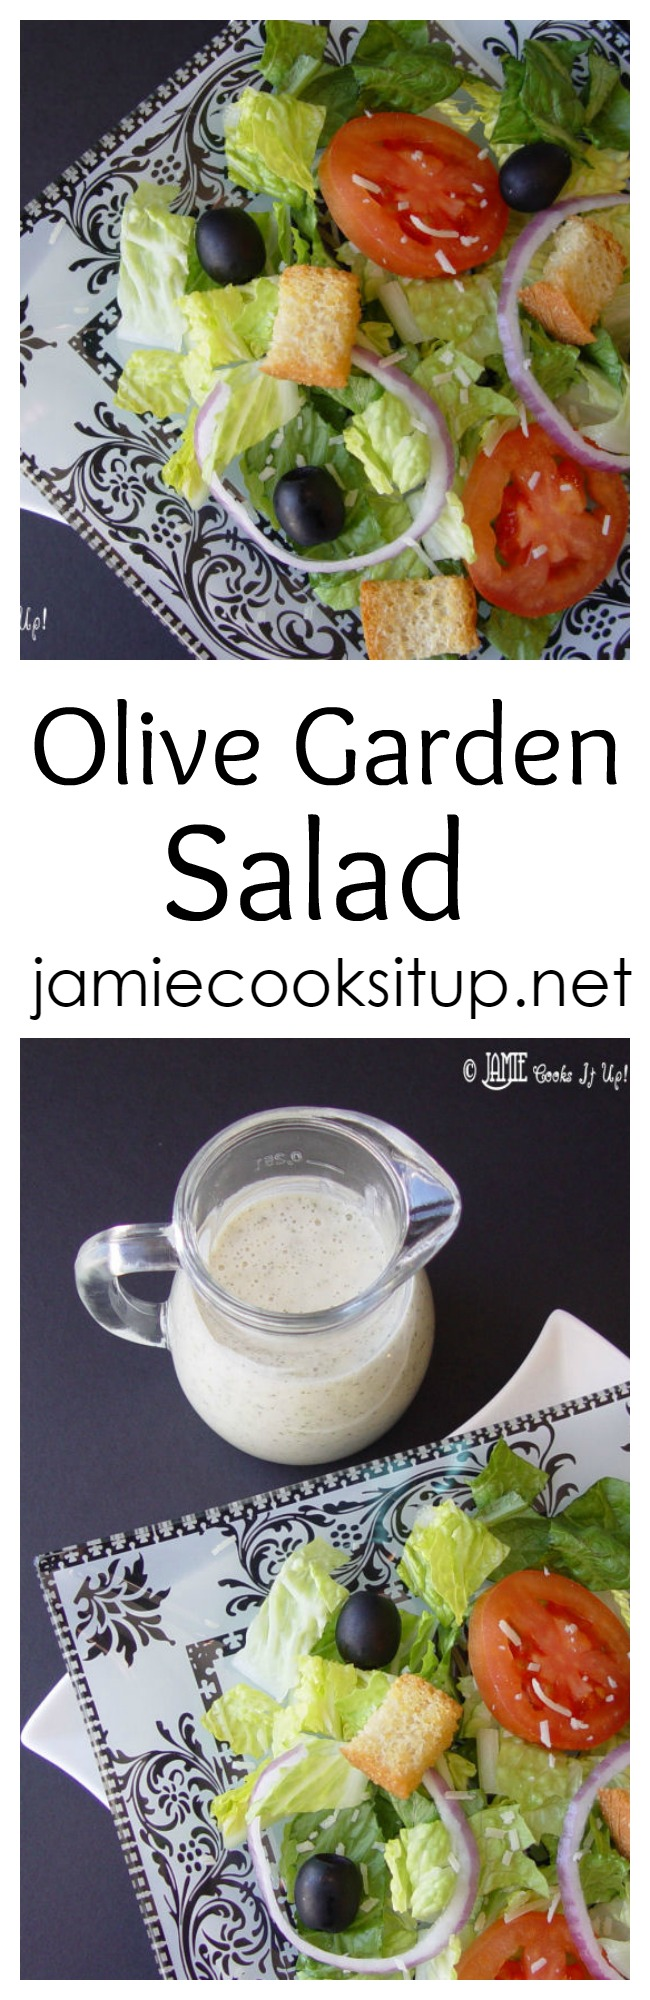 olive garden salad from jamie cooks it up - How To Make Olive Garden Salad